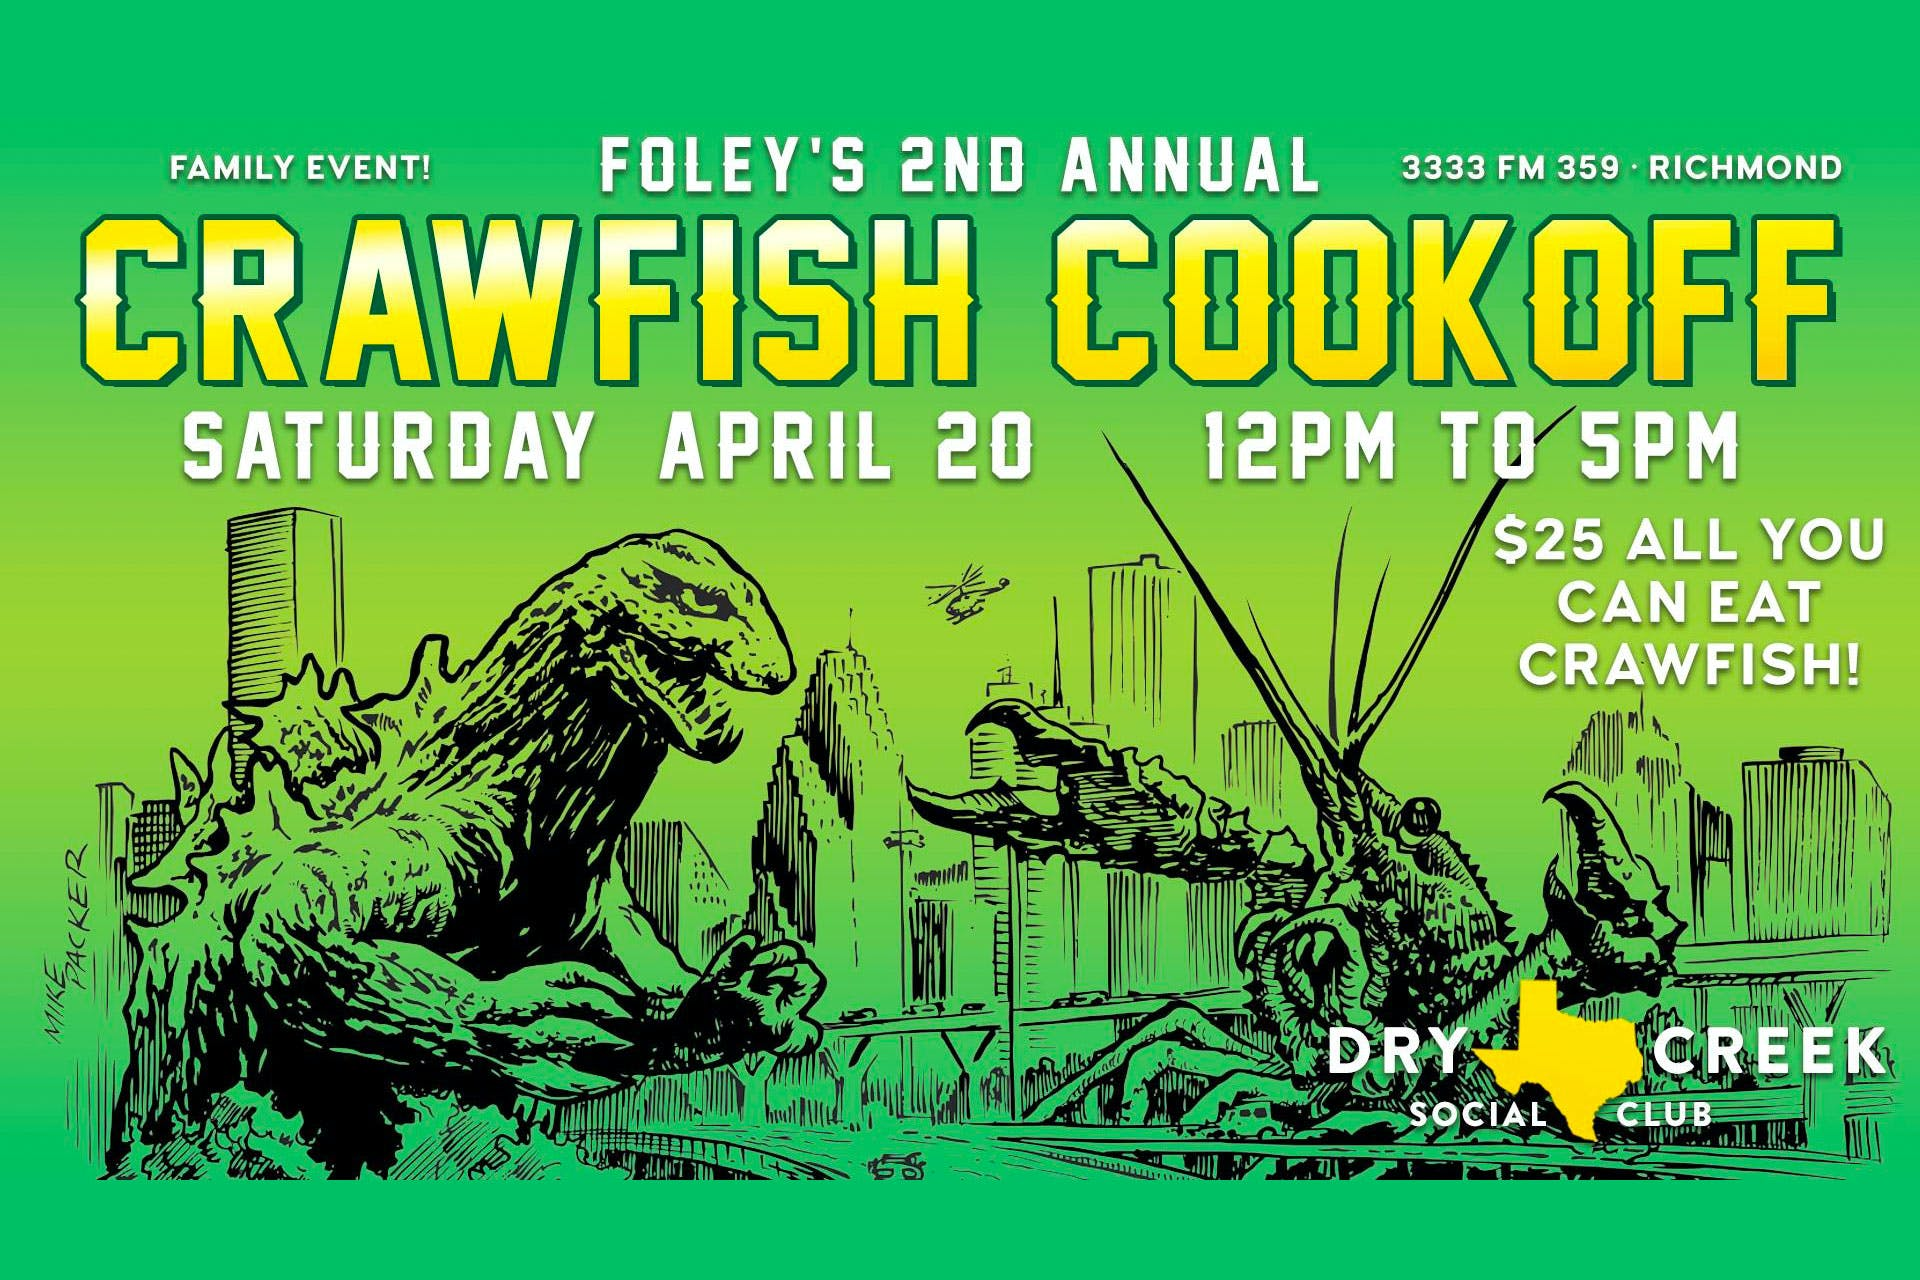 Crawfish-Cookoff-Foleys-2nd-Annual